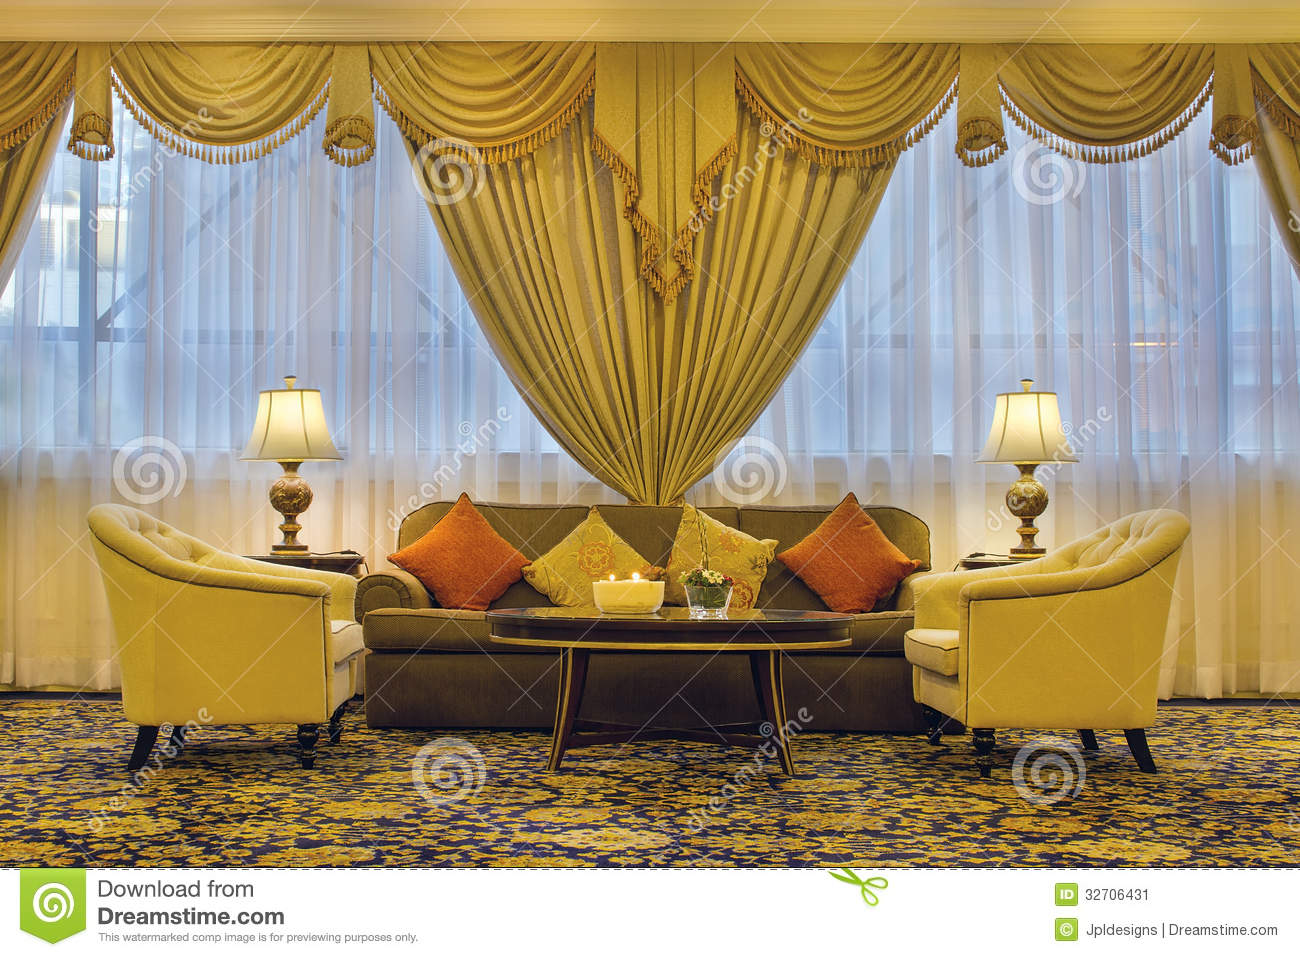 carpet for living room small ideas with mirrors ornate curtains and furniture stock image ...